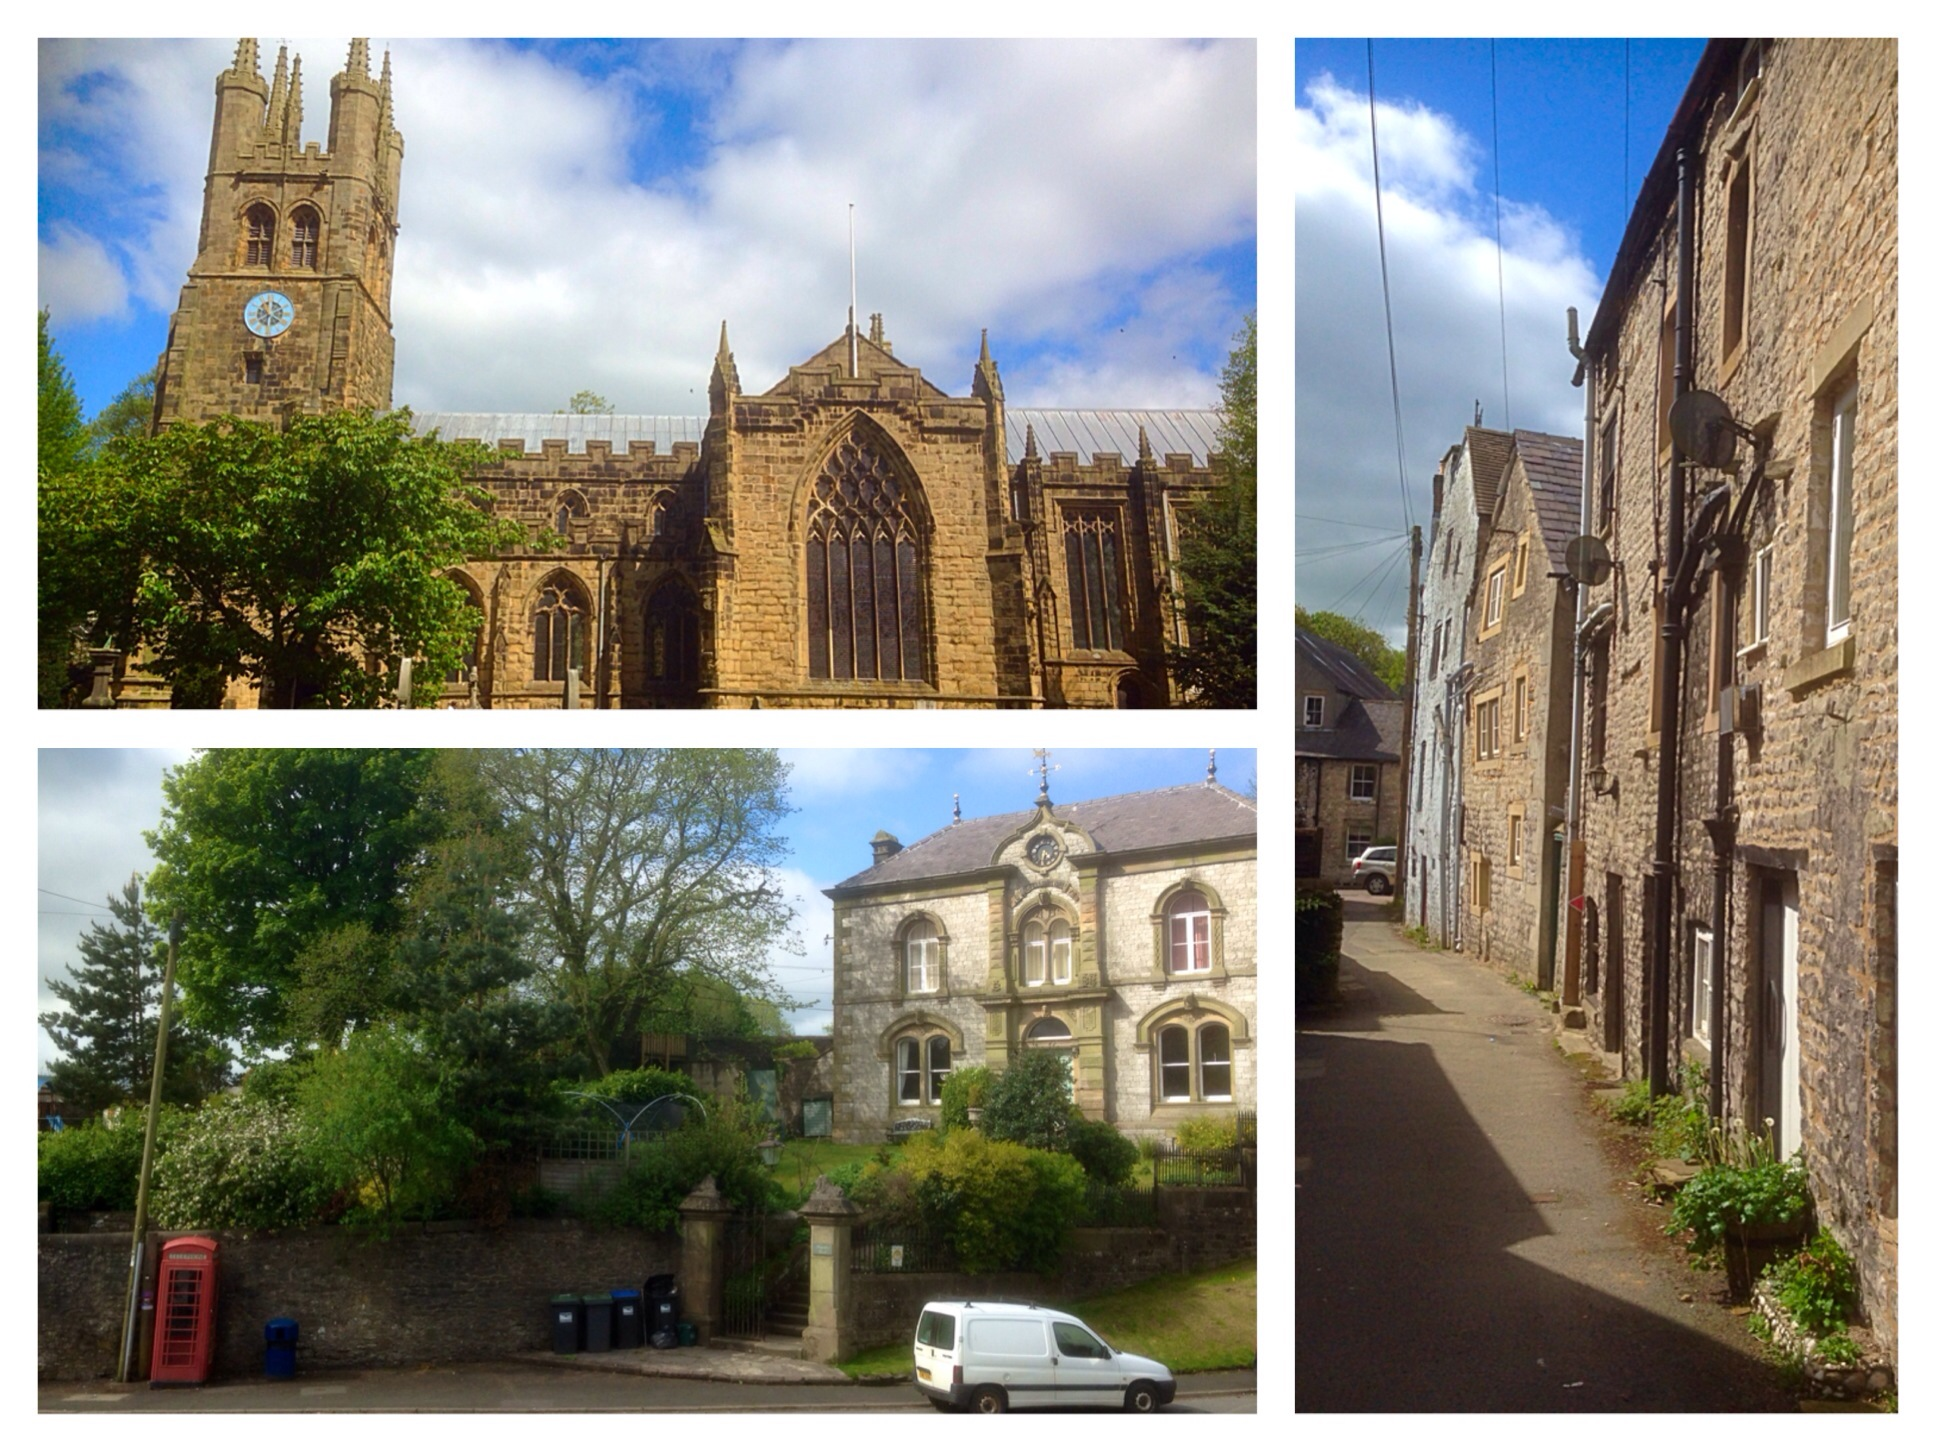 Tideswell, Derbyshire, Peak District